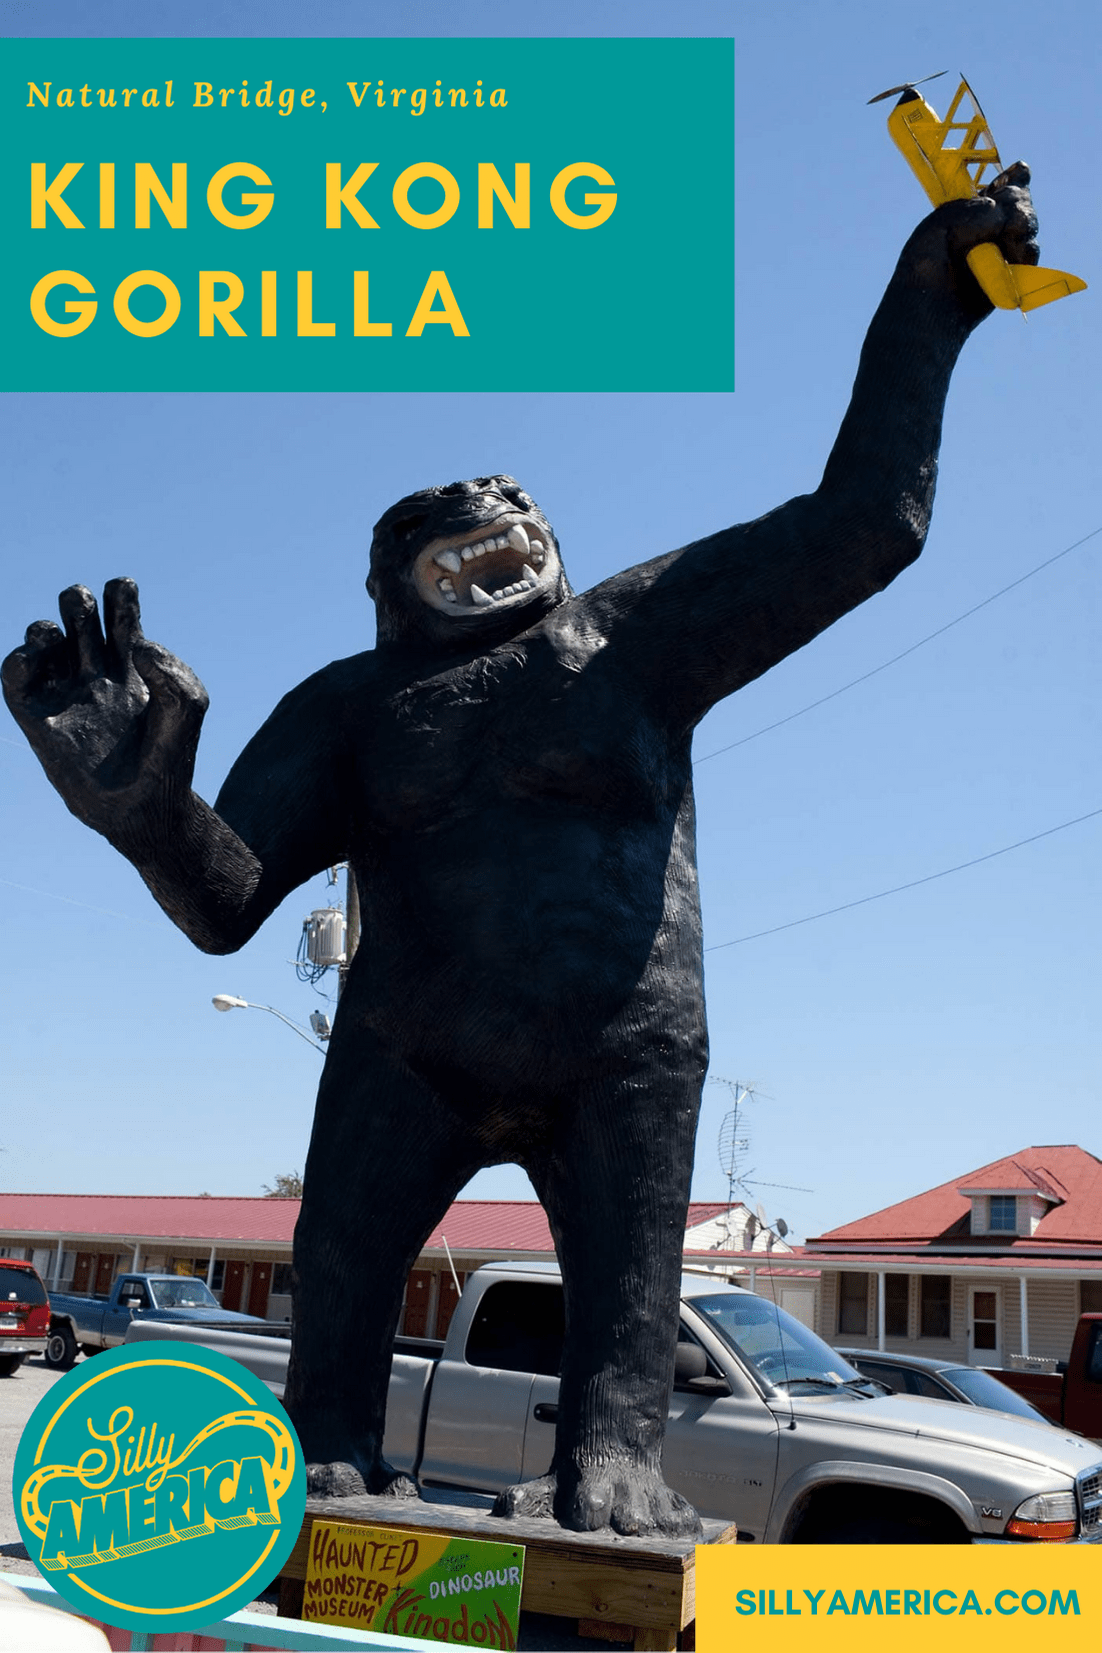 Giant King Kong Gorilla at Pink Cadillac Diner in Natural Bridge, Virginia. The Mark Cline roadside attraction is now at Dinosaur Kingdom II. #VirginiaRoadsideAttractions #VirginiaRoadsideAttraction #RoadsideAttractions #RoadsideAttraction #RoadTrip #VirginiaRoadTrip #VirginiaRoadTripBucketLists #VirginiaBucketList #VirginiaRoadTripIdeas